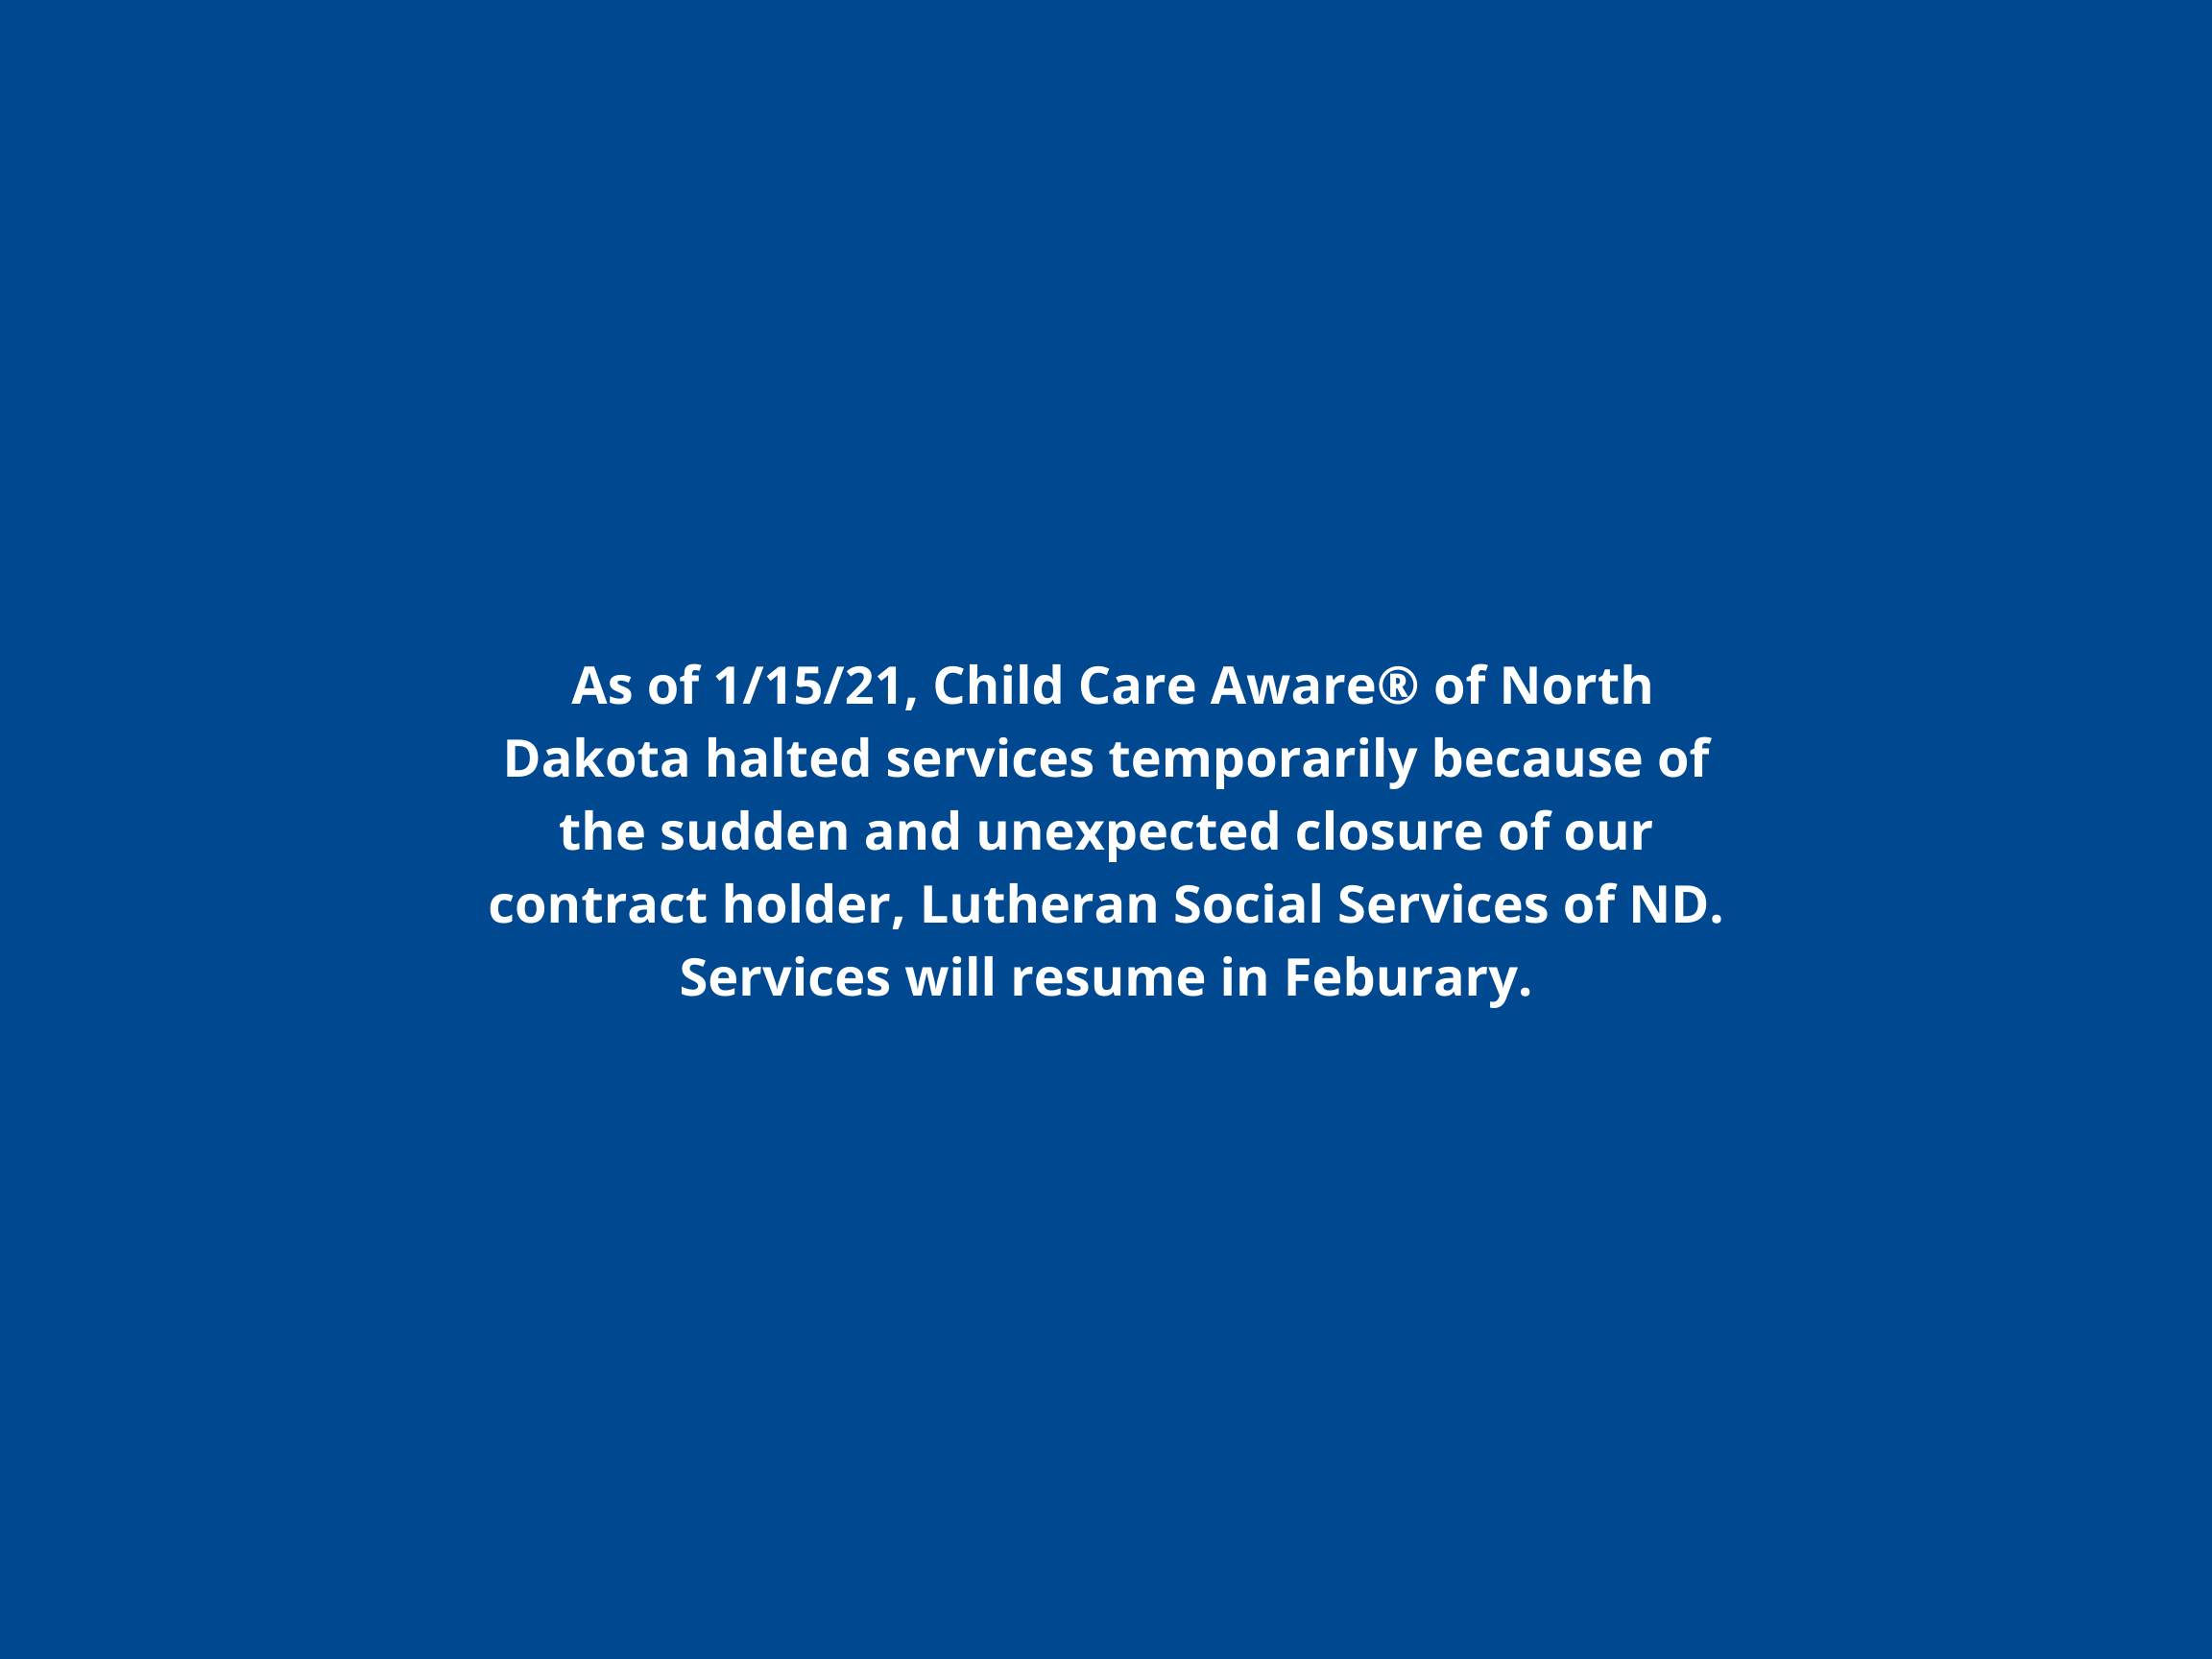 Services Will Resume in February